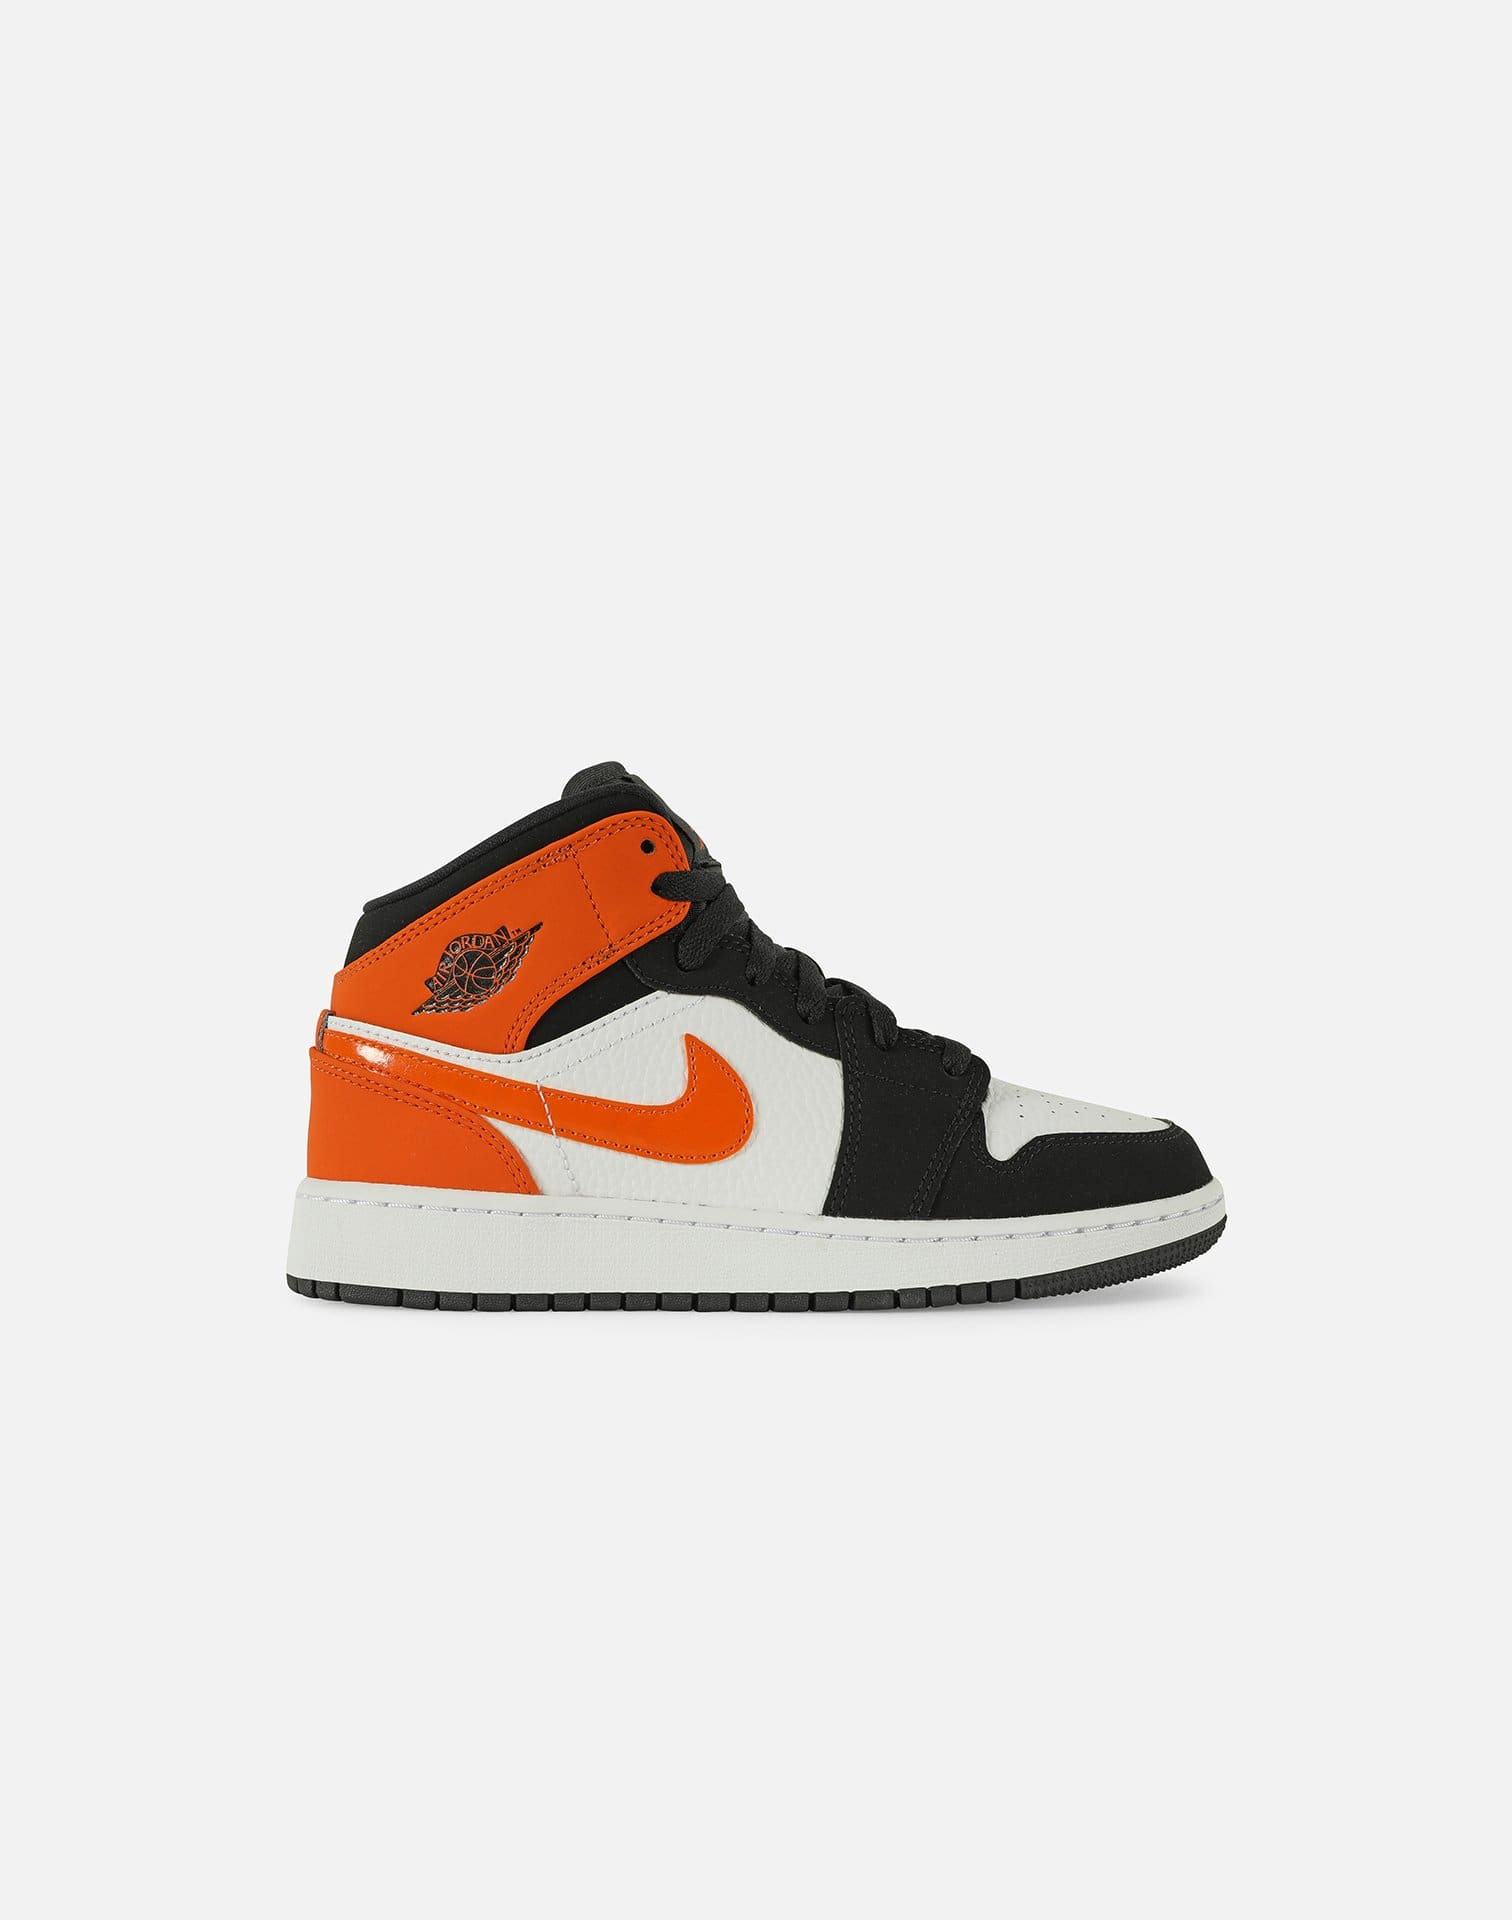 Jordan Air Jordan 1 Mid 'Shattered Backboard' Grade-School